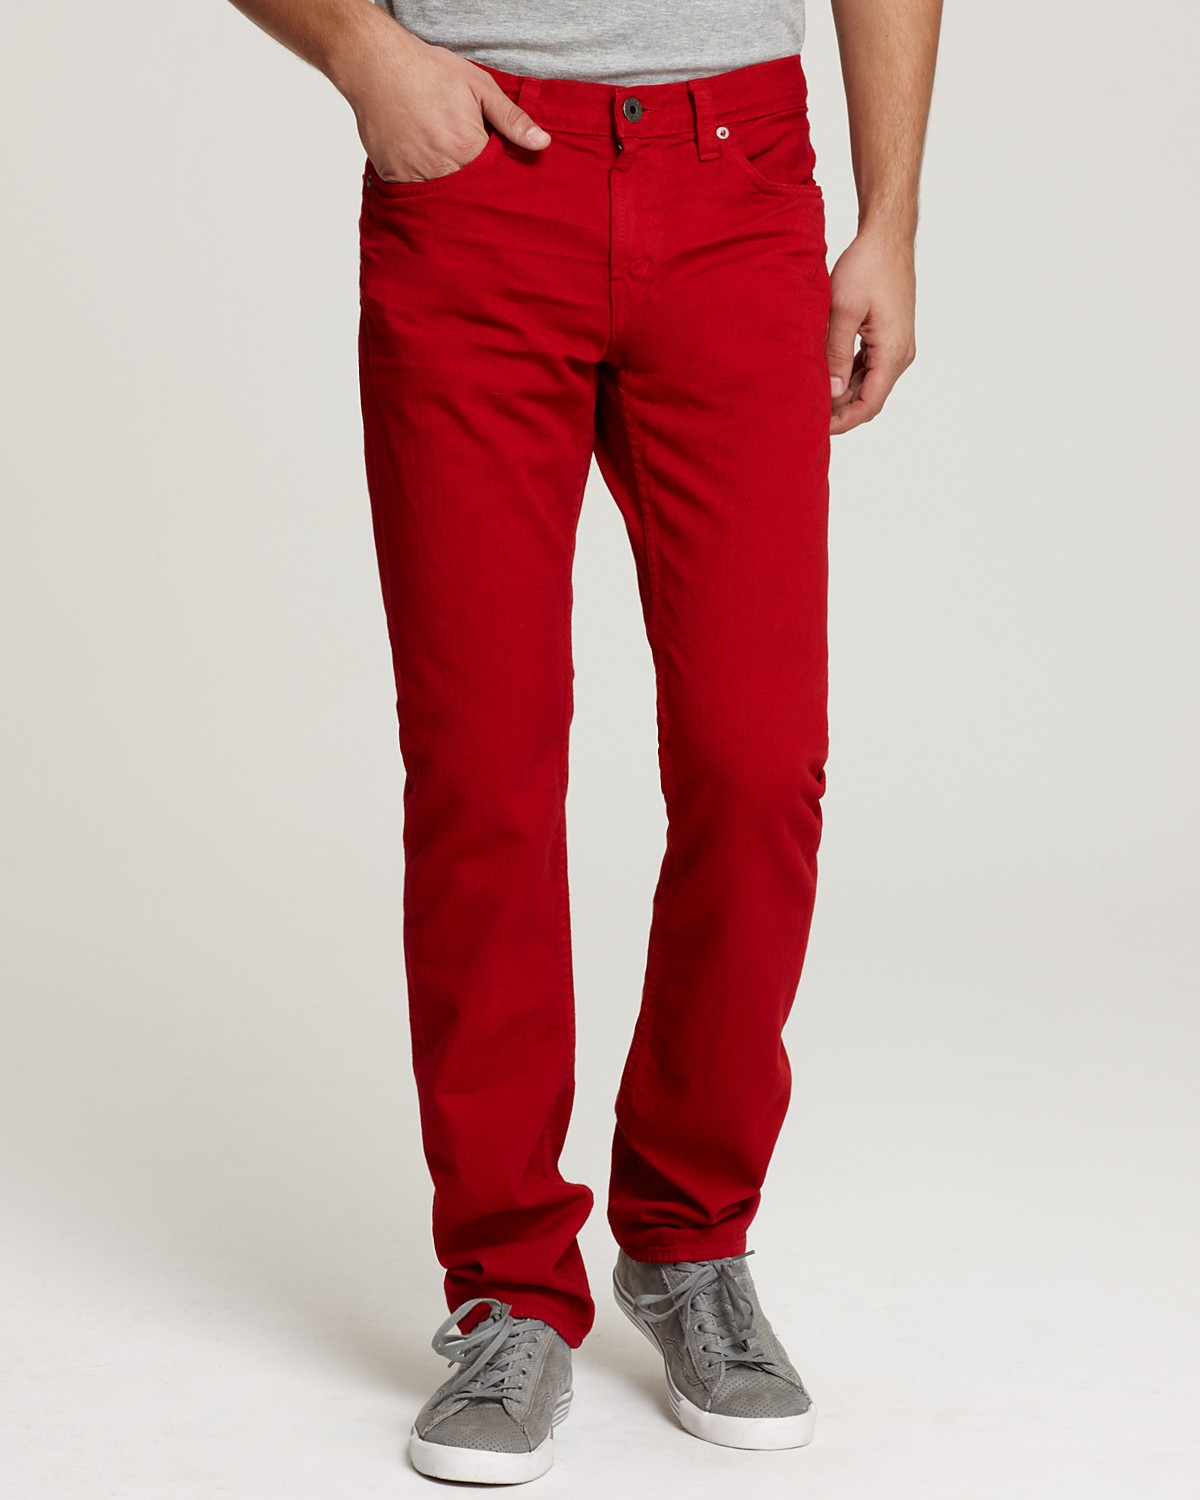 Find great deals on eBay for red mens pants. Shop with confidence.